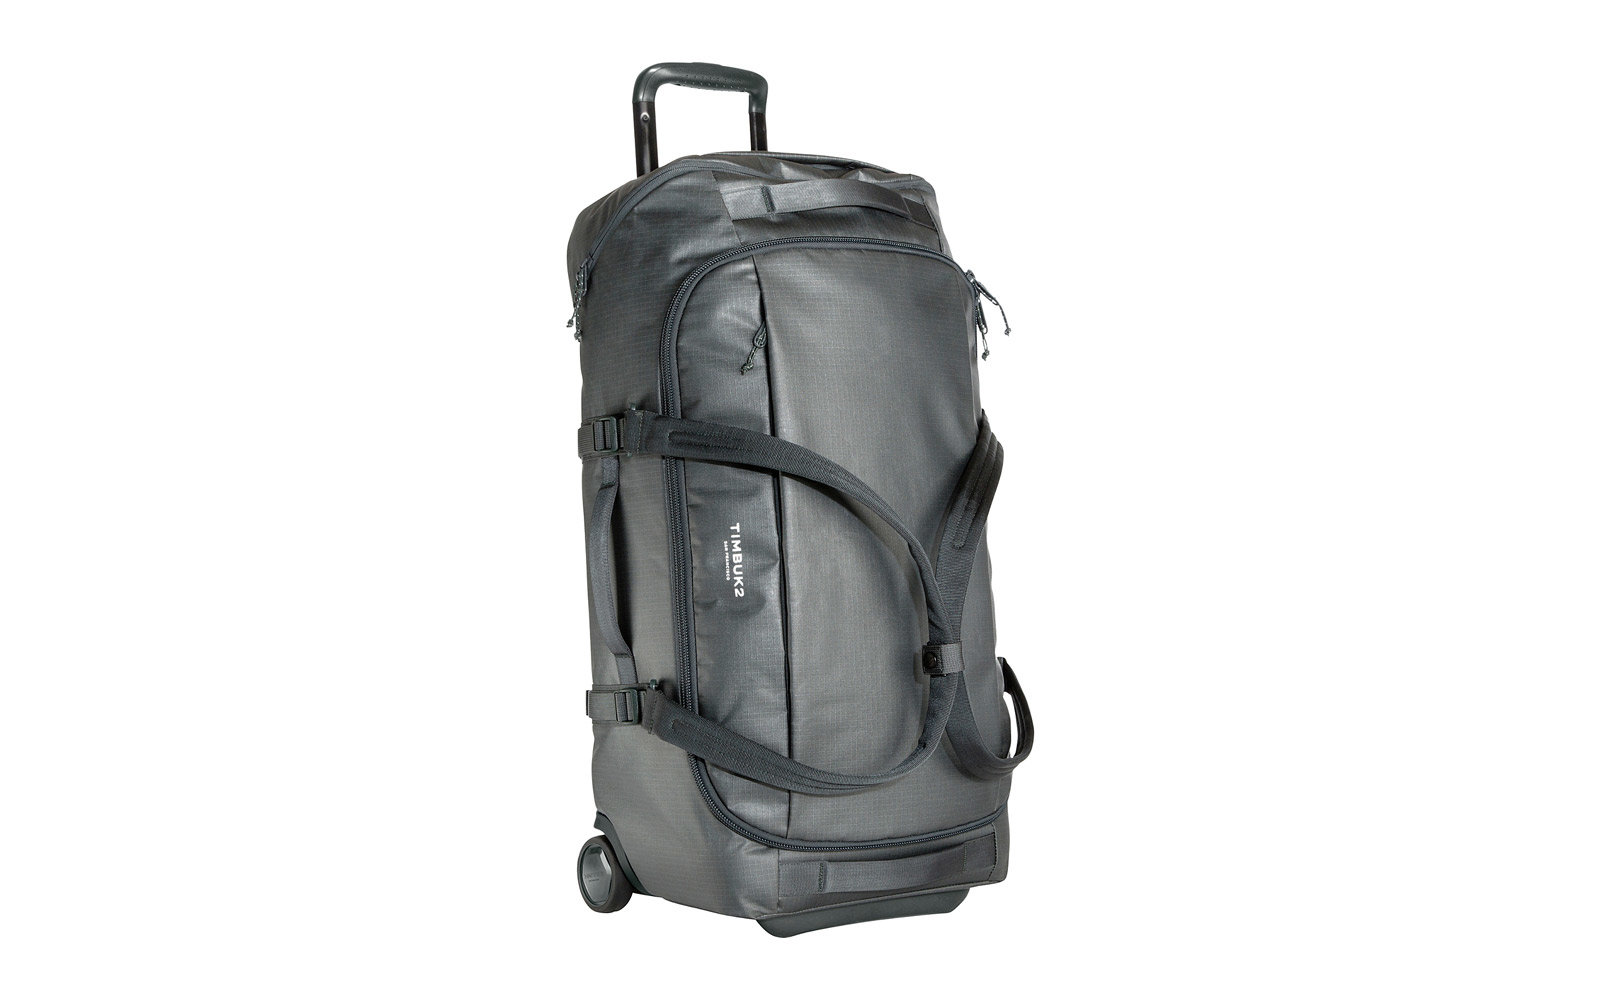 Timbuk2 Quest Large Wheeled Duffel Bag